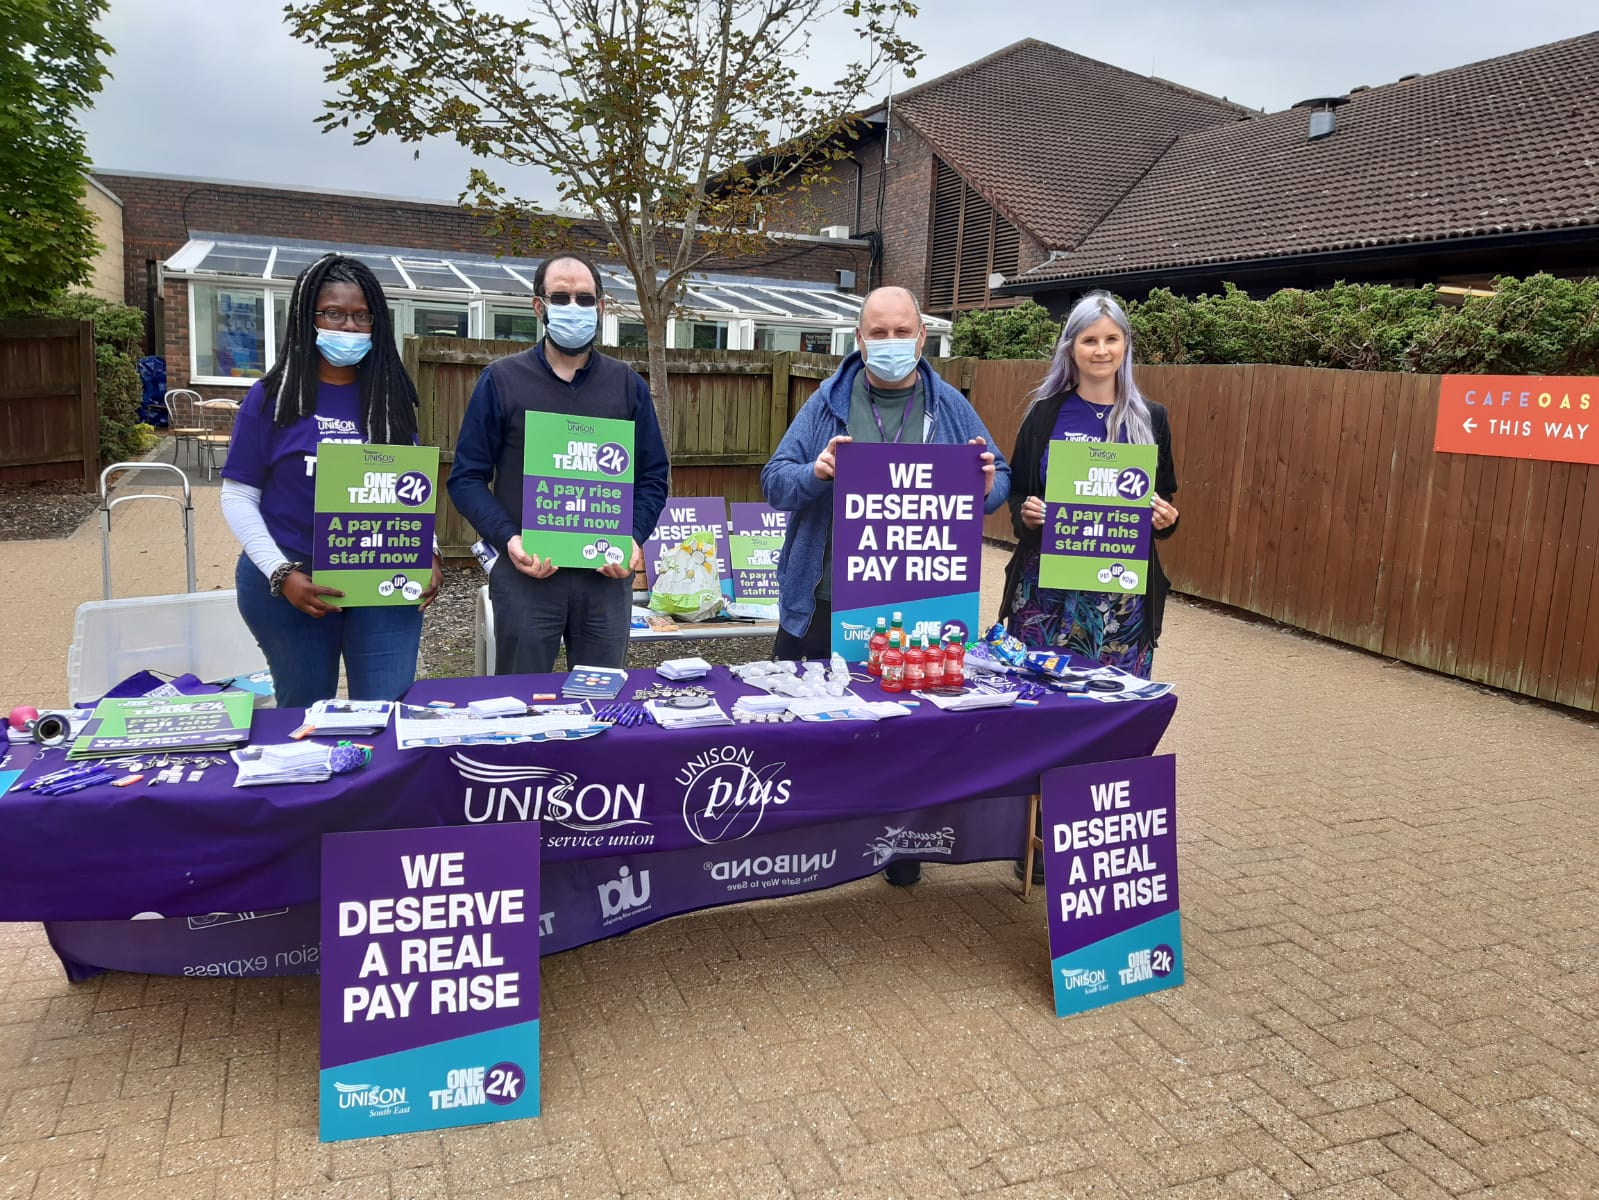 image shows four UNISON activists standing behind a table, they are holding placards asking for a pay rise for NHS staff